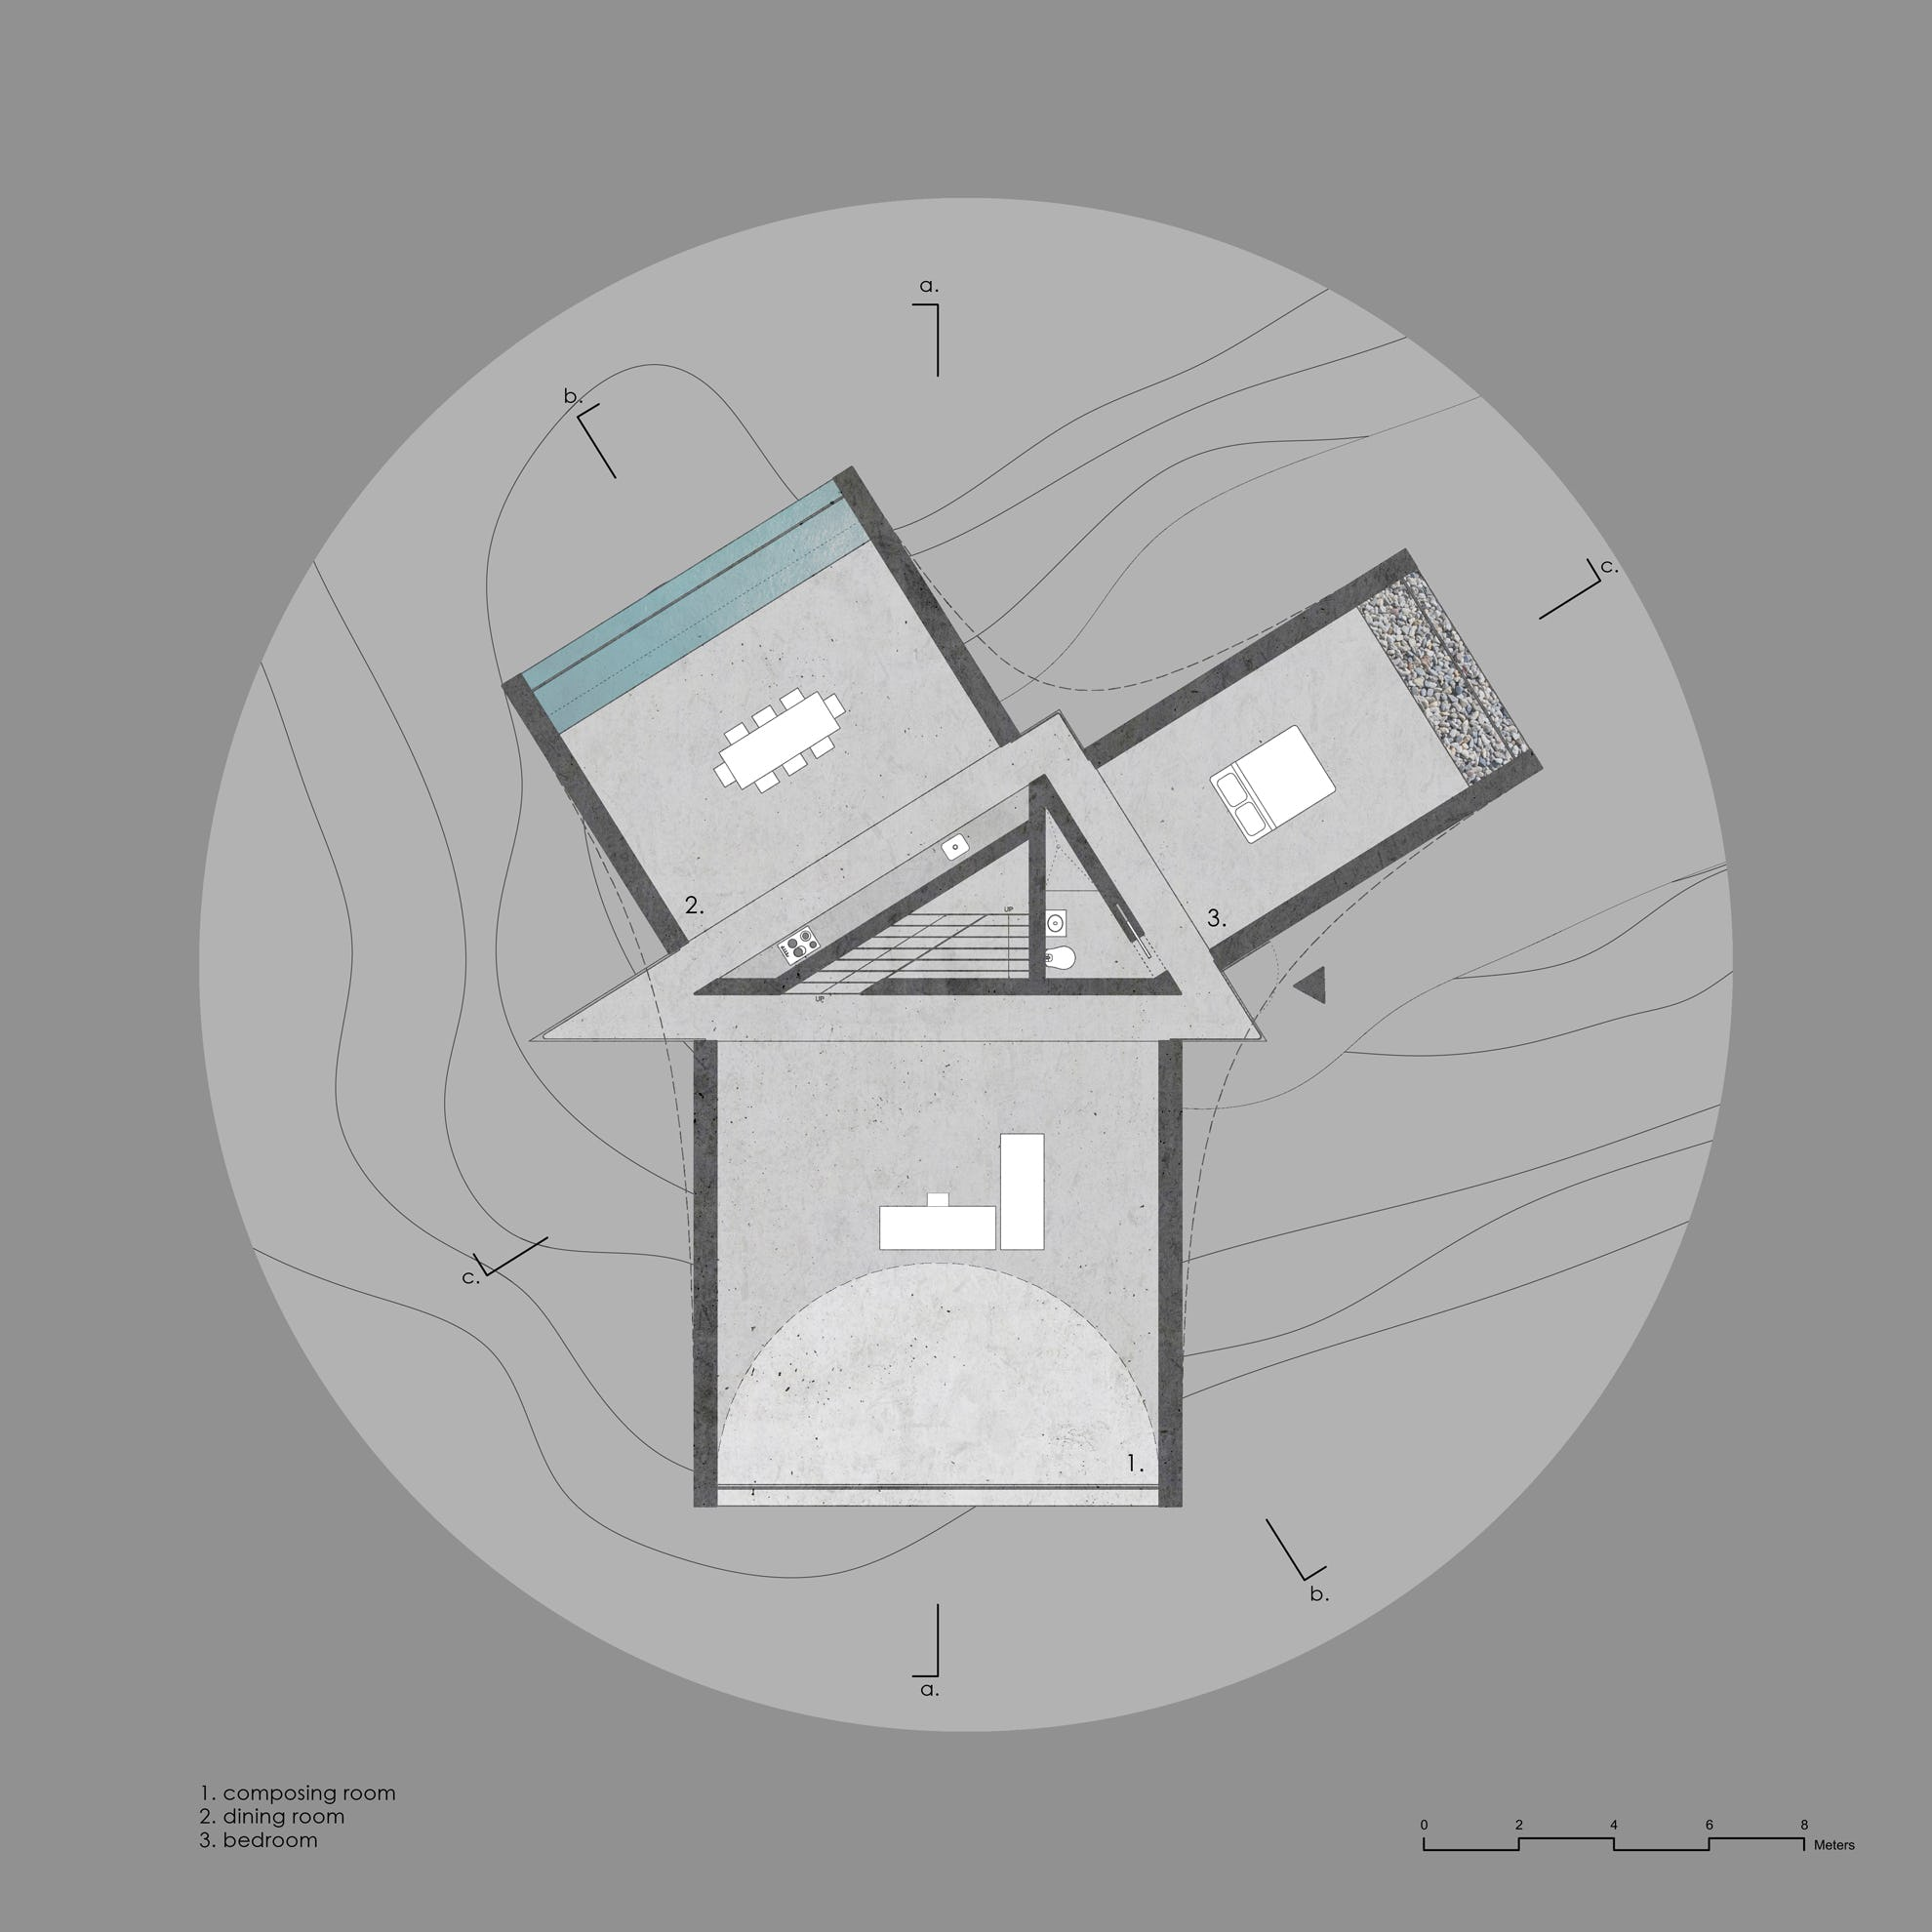 03 1st floor plan